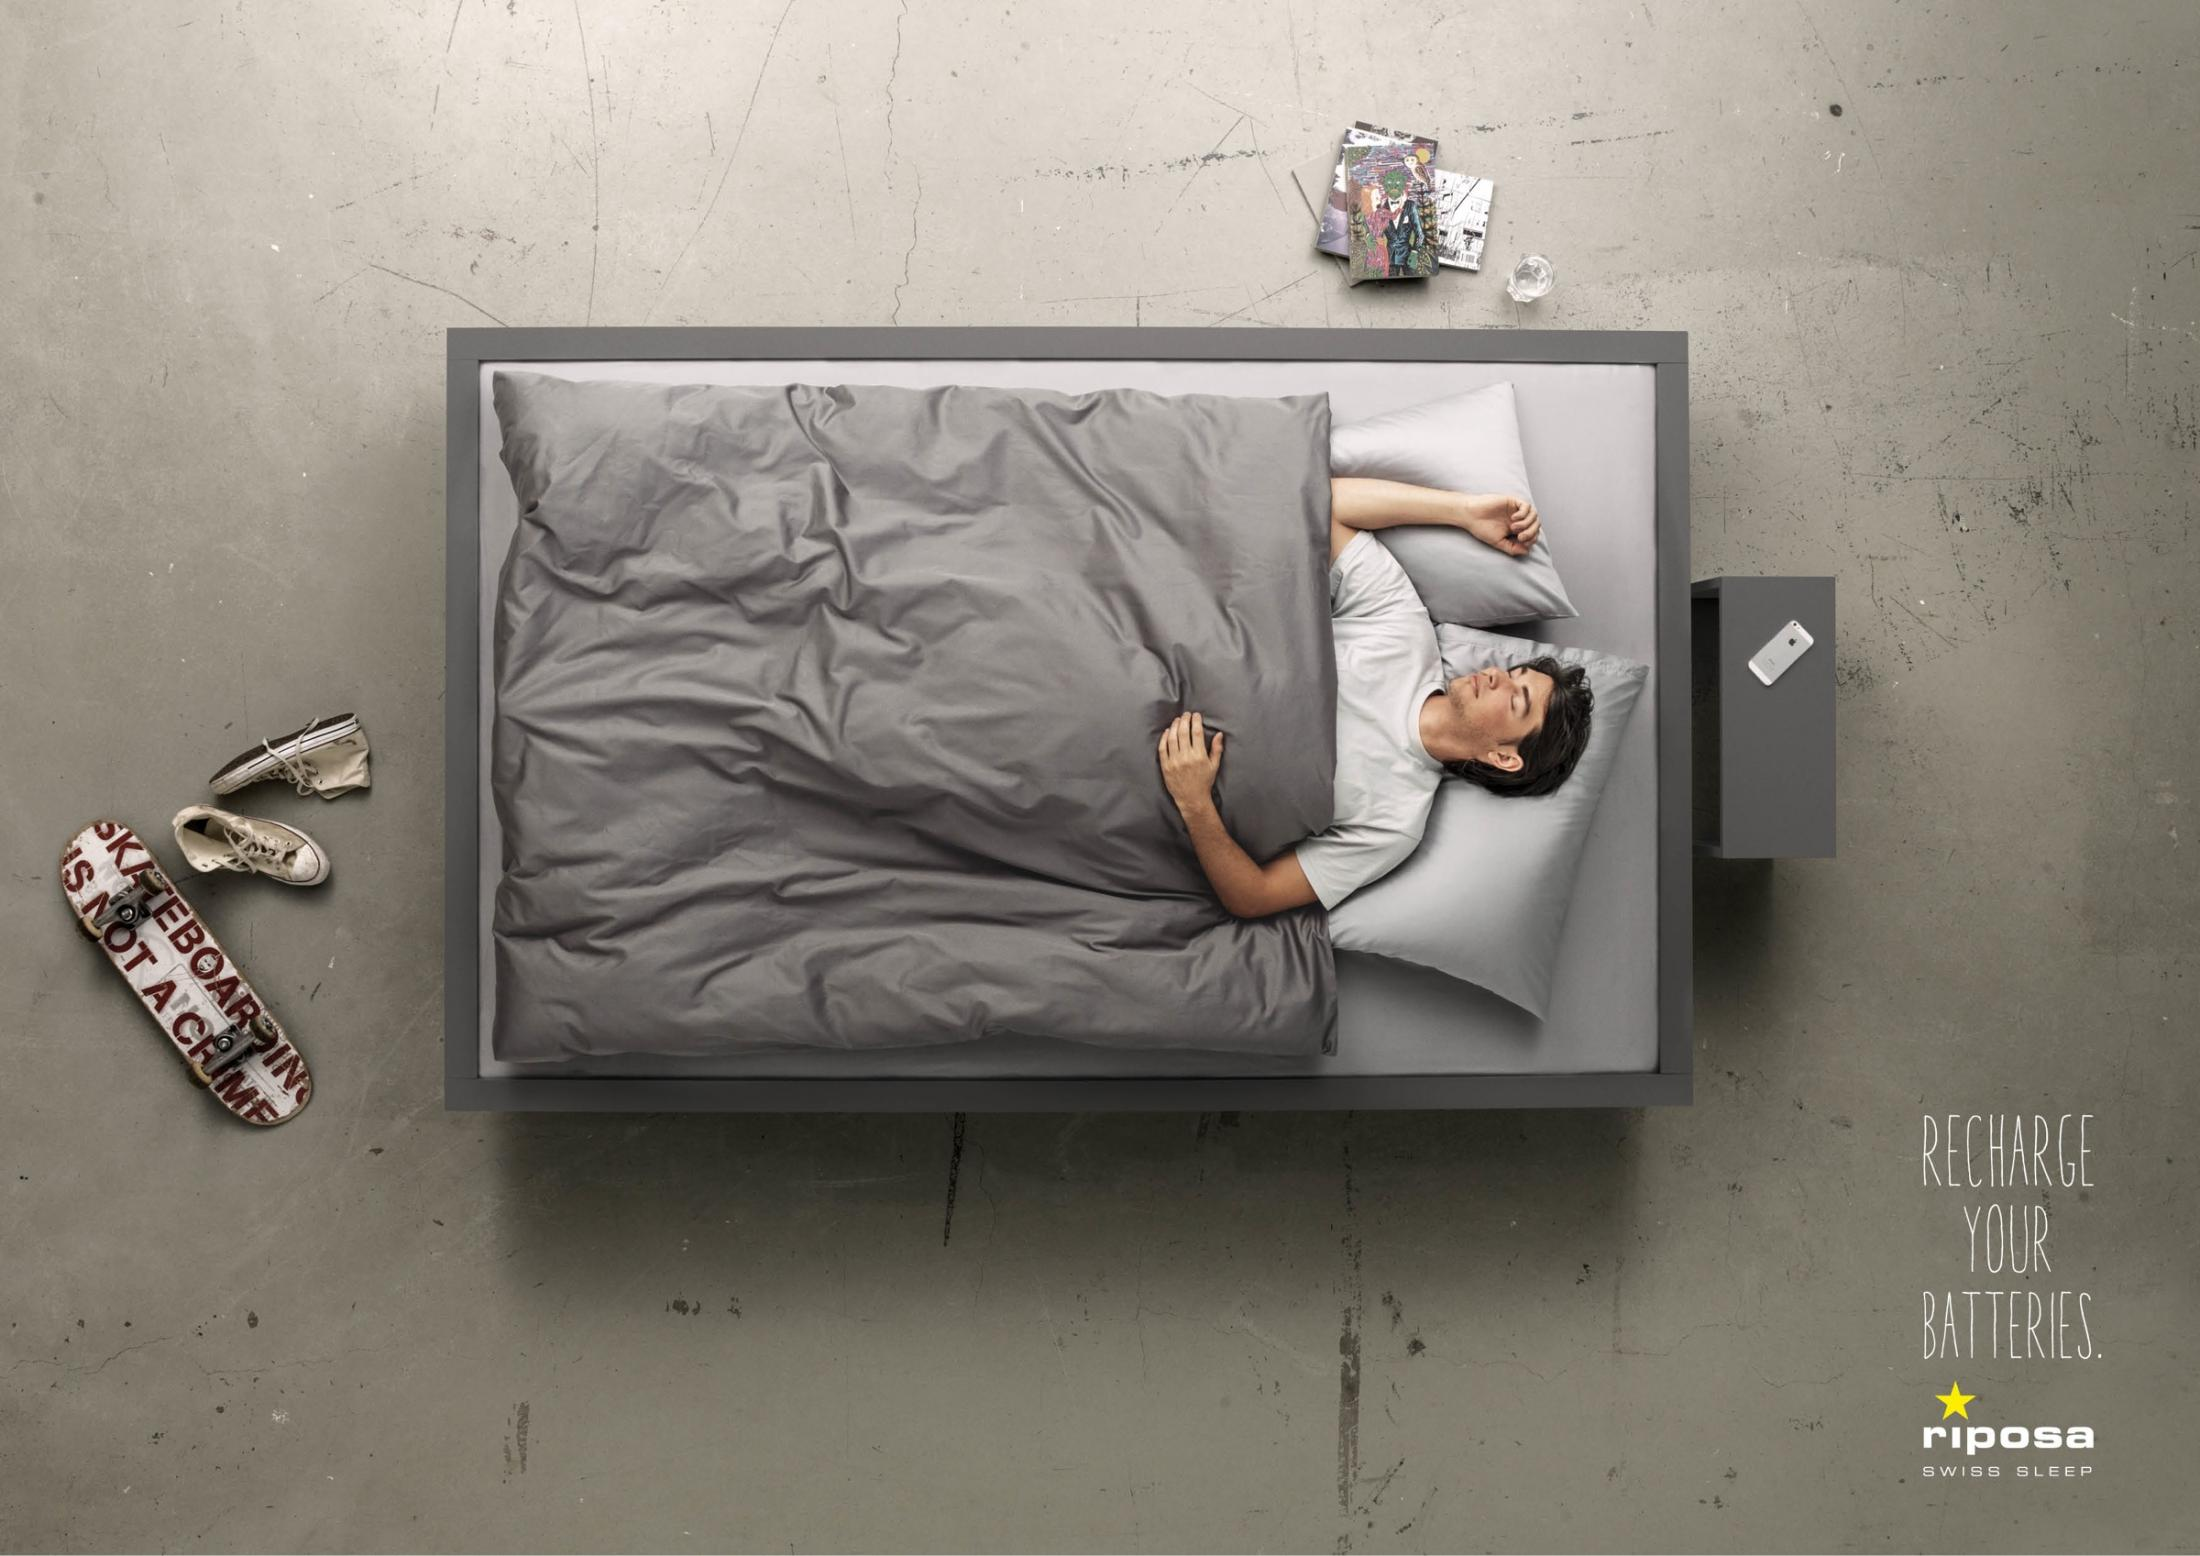 Riposa Print Ad -  Recharge your Batteries, Guy